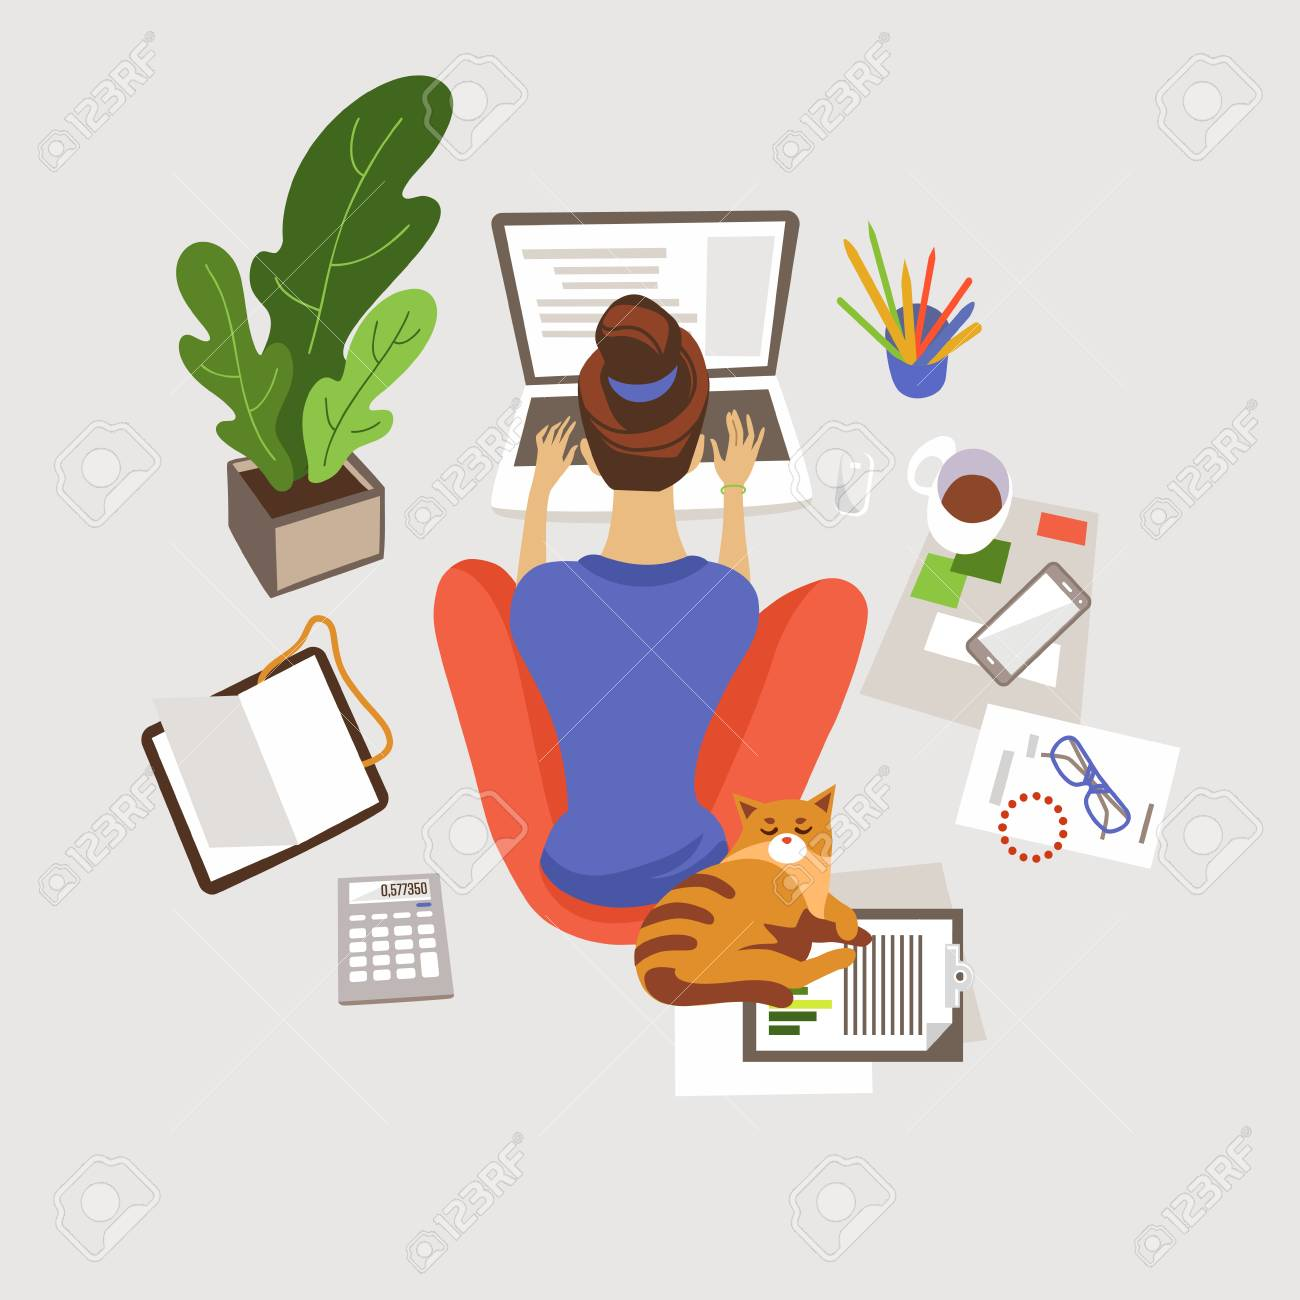 Young woman working, studying at home flat vector illustration. Remote, freelance job. E-learning. Girl sitting on floor and using laptop. Home workspace. Freelancer with cat cartoon character - 126319502